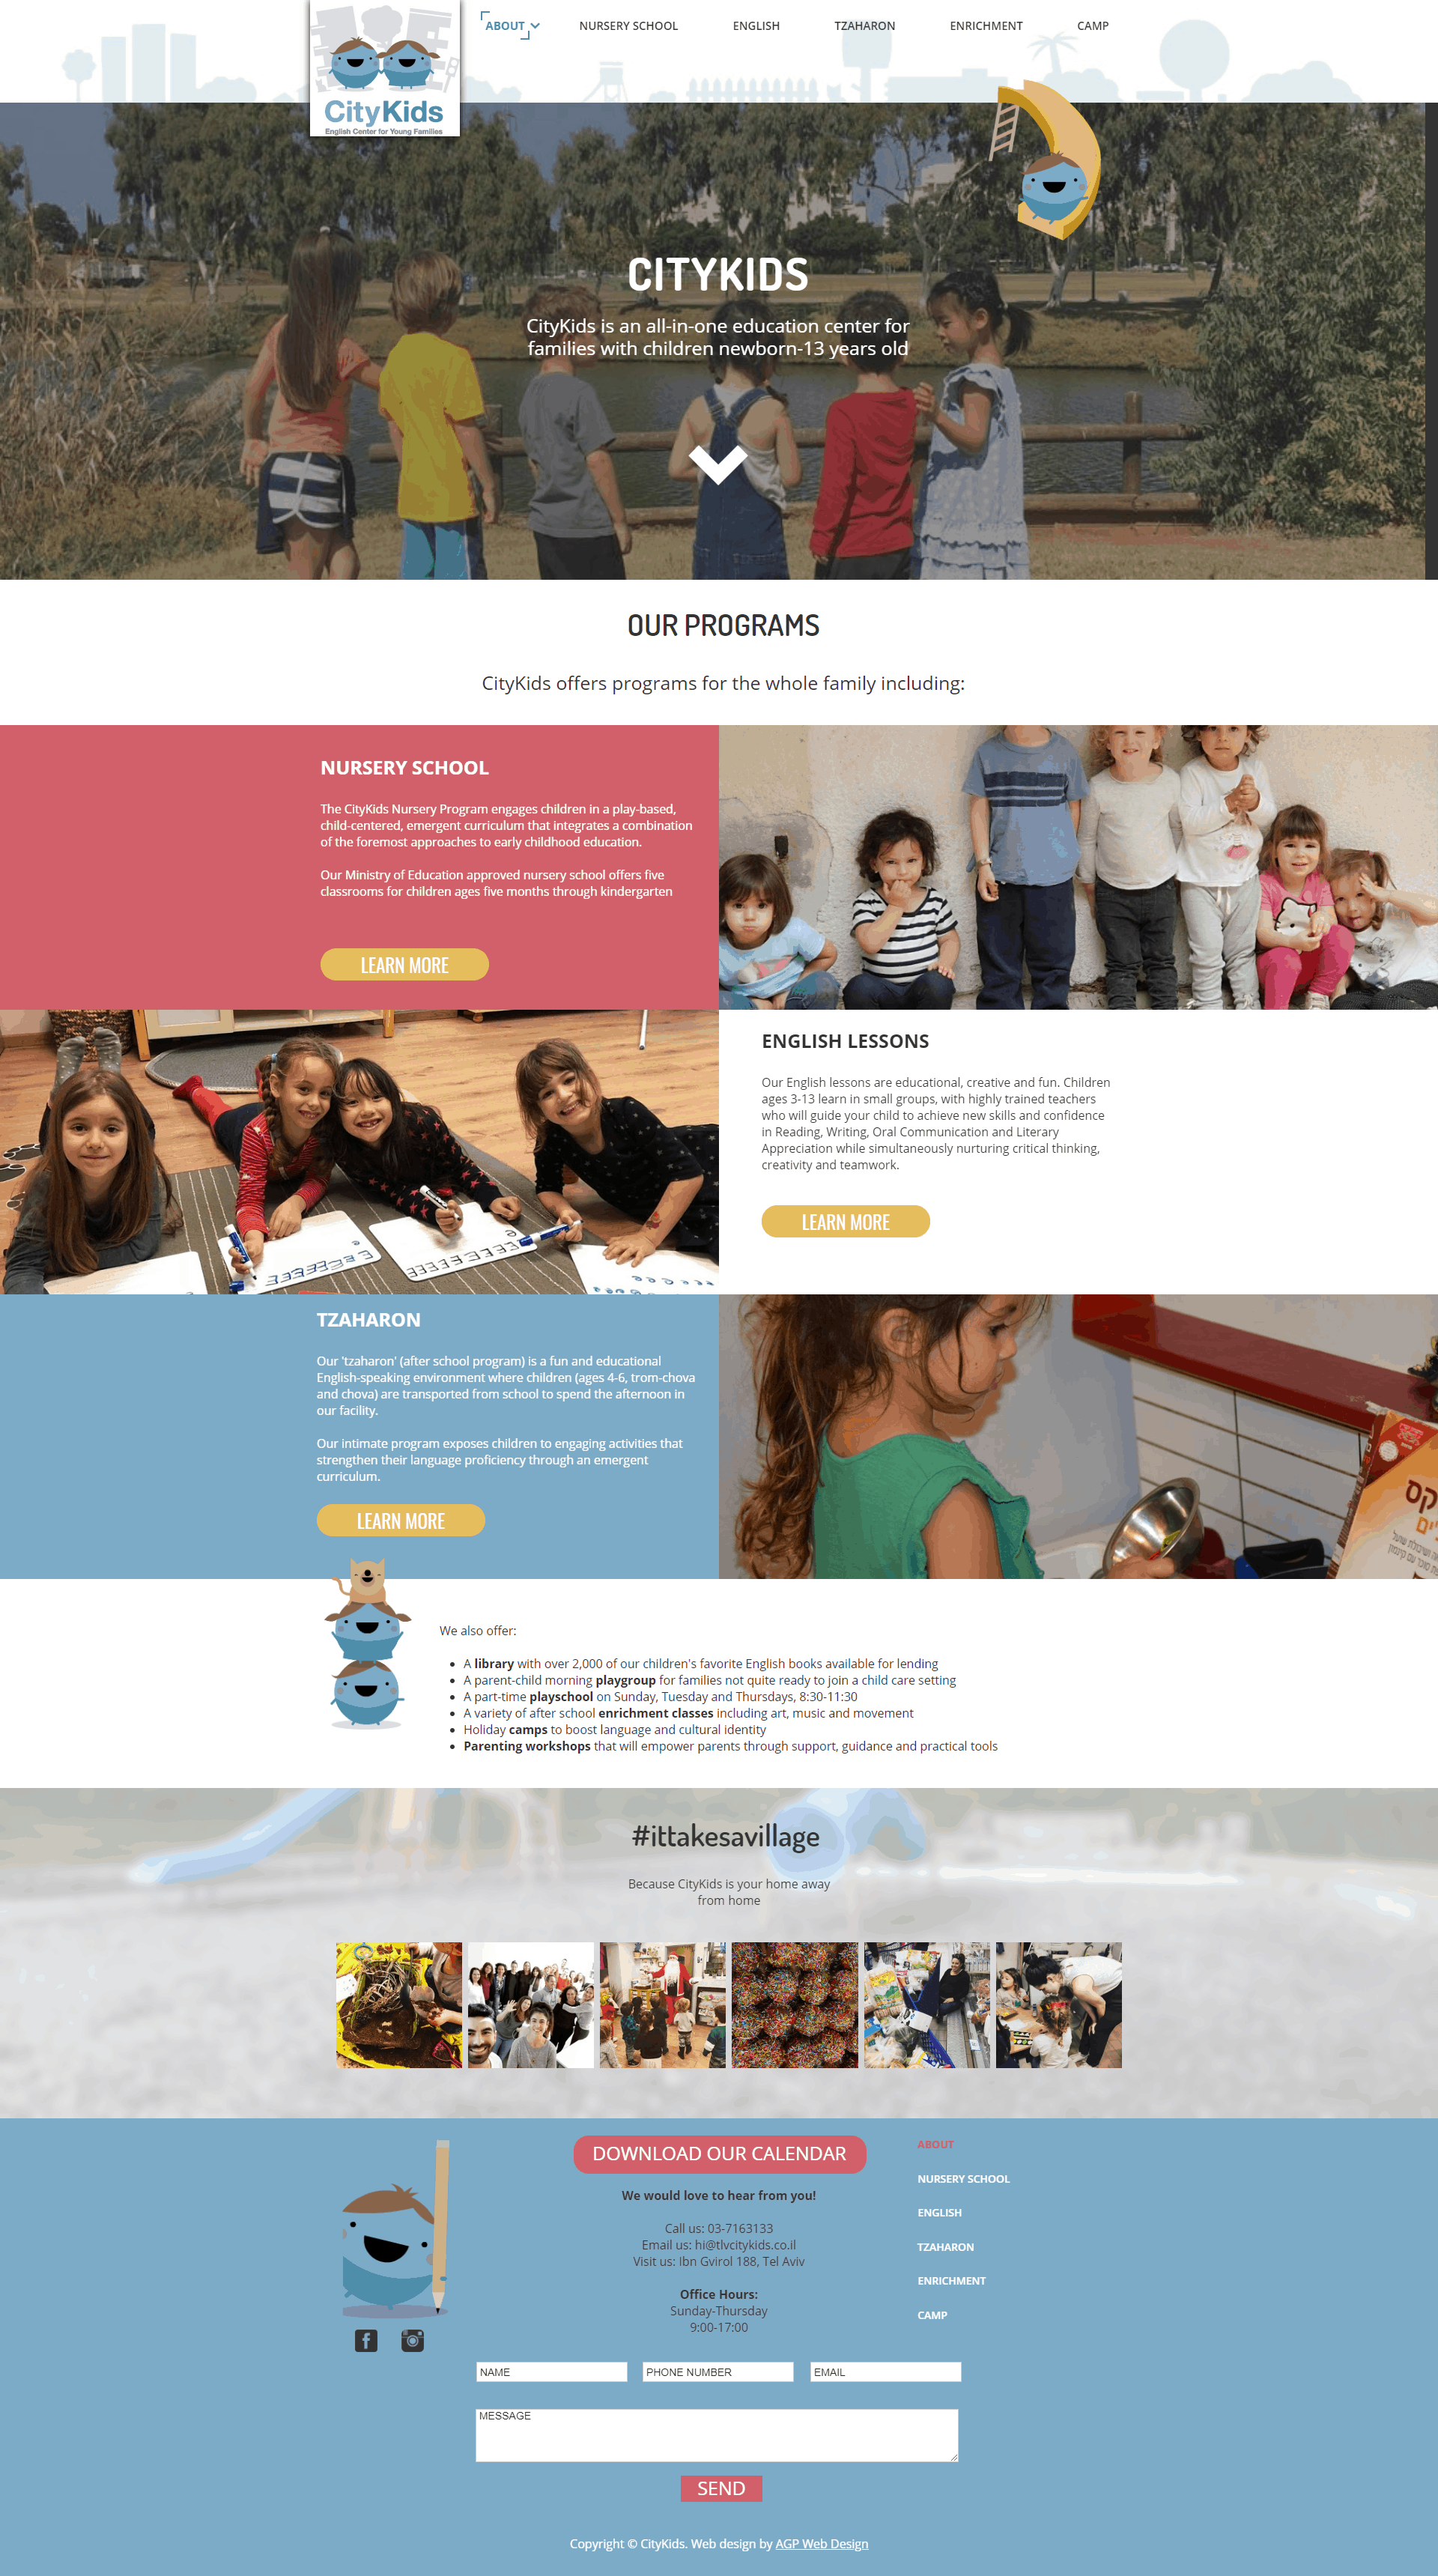 citykids website screenshot